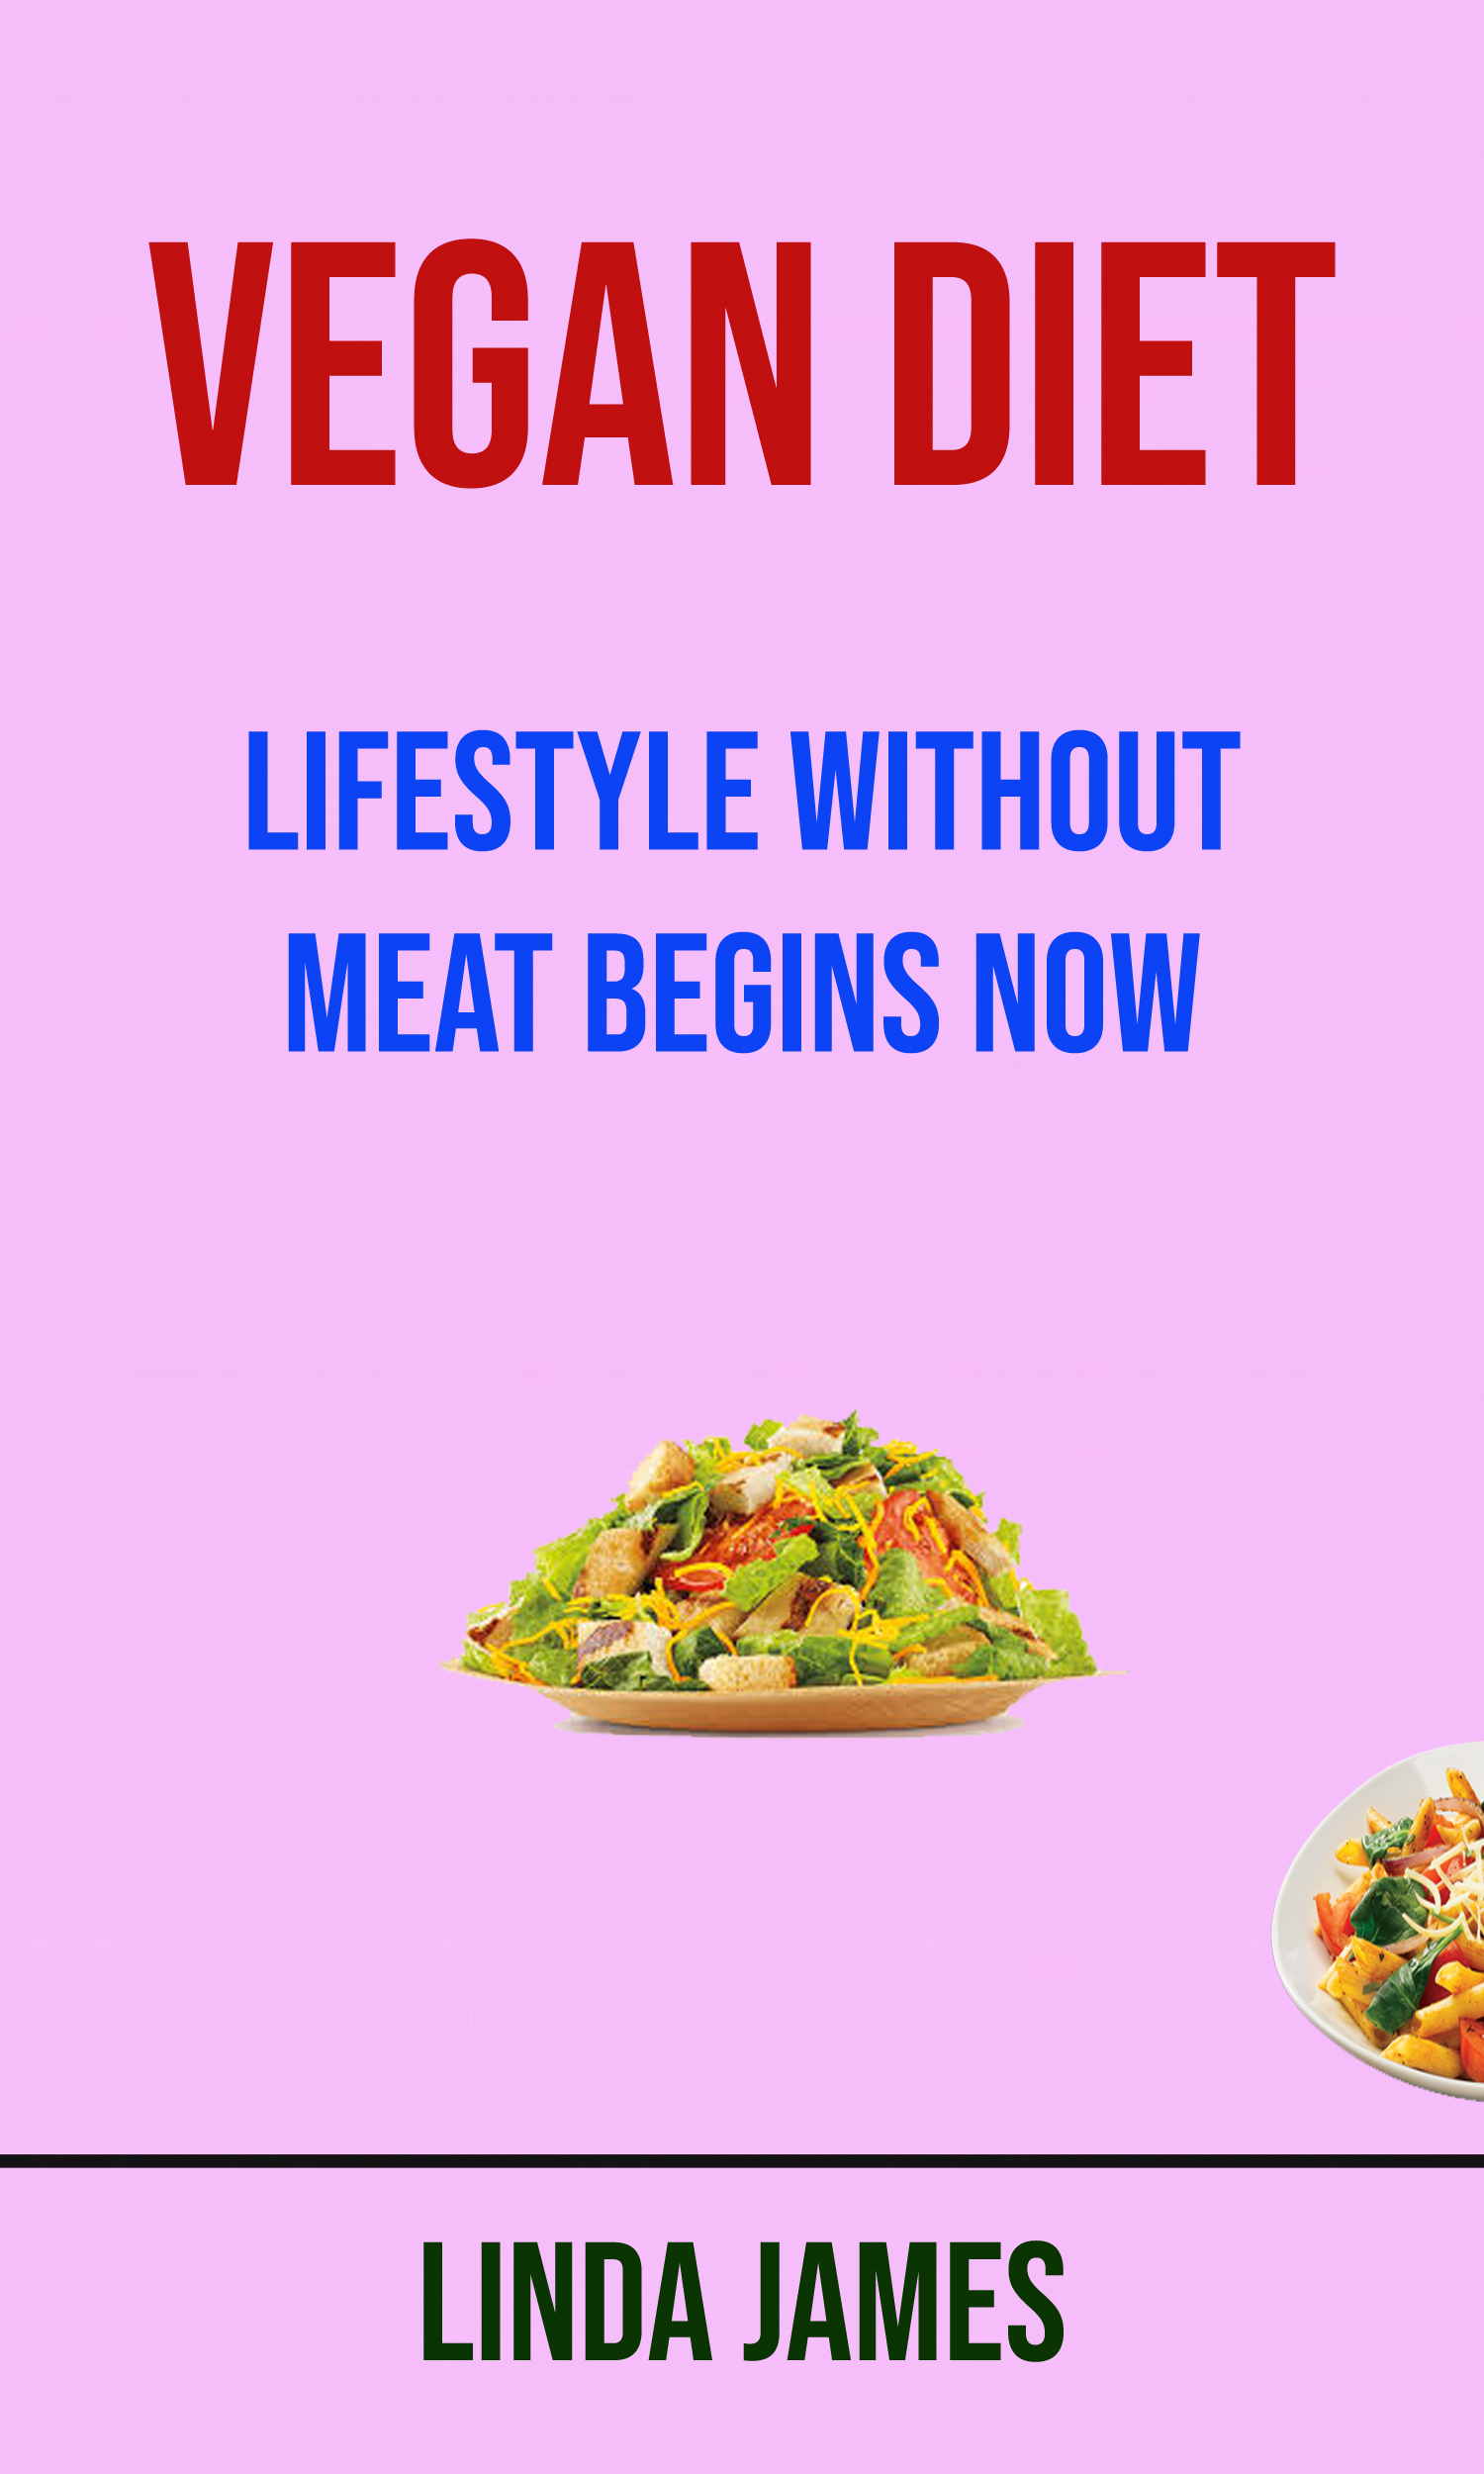 Vegan diet: lifestyle without meat begins now